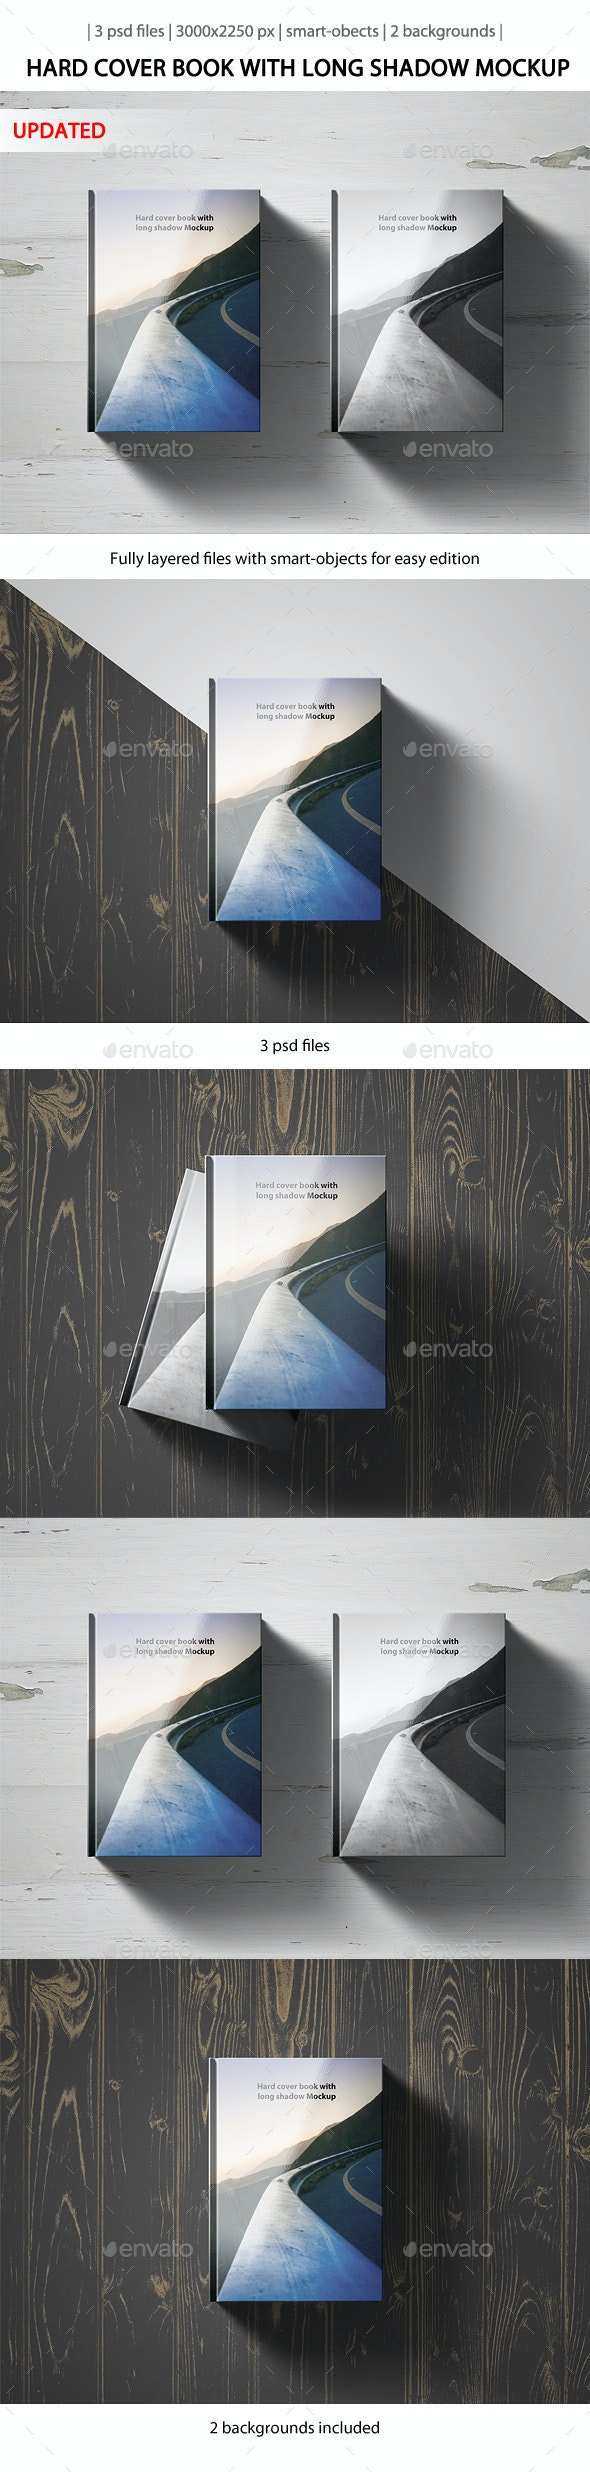 Hard Cover Book with Long Shadow Mockup - Books Print